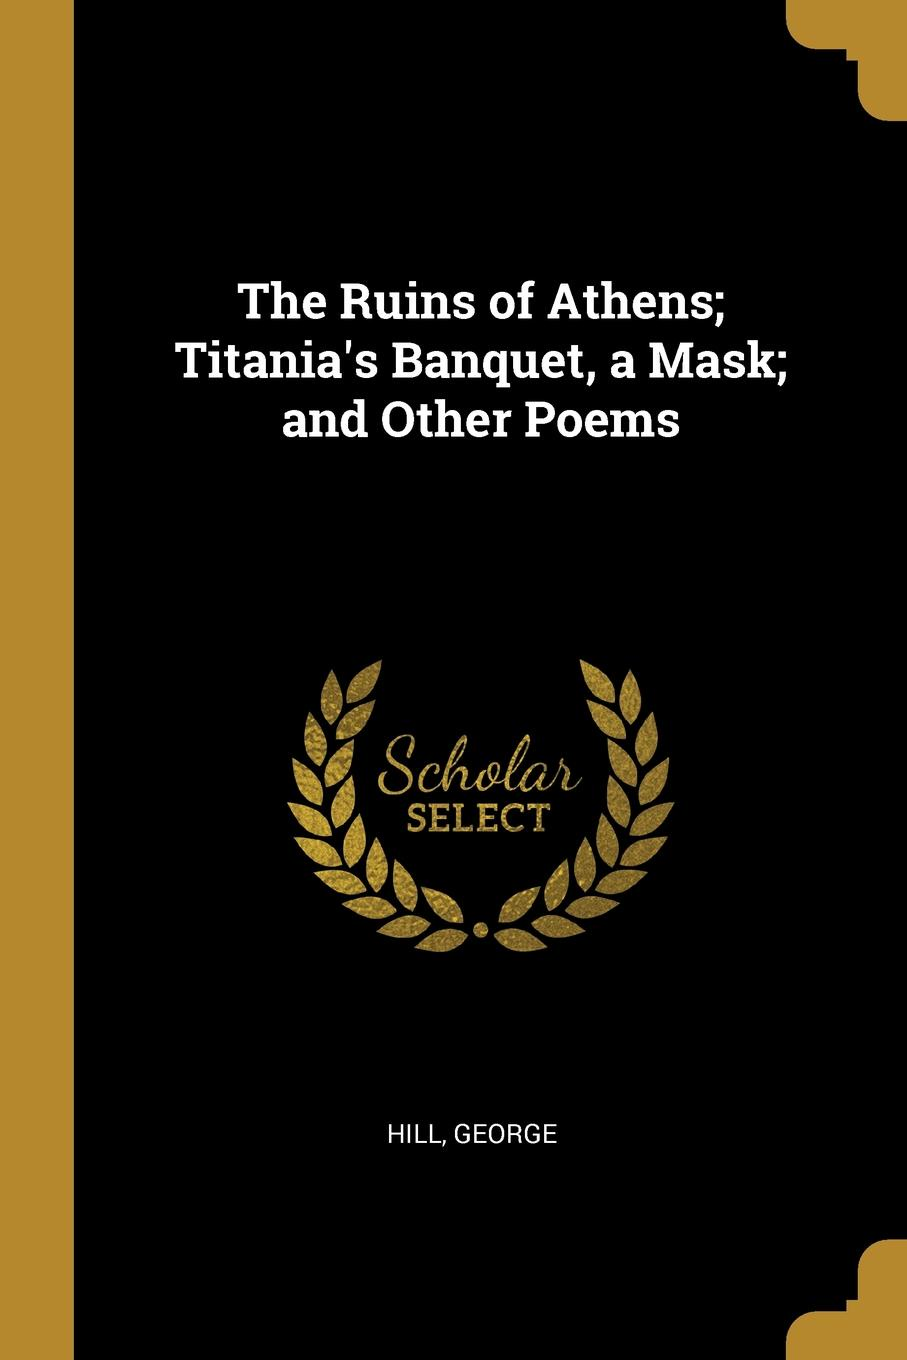 Hill George. The Ruins of Athens; Titania.s Banquet, a Mask; and Other Poems